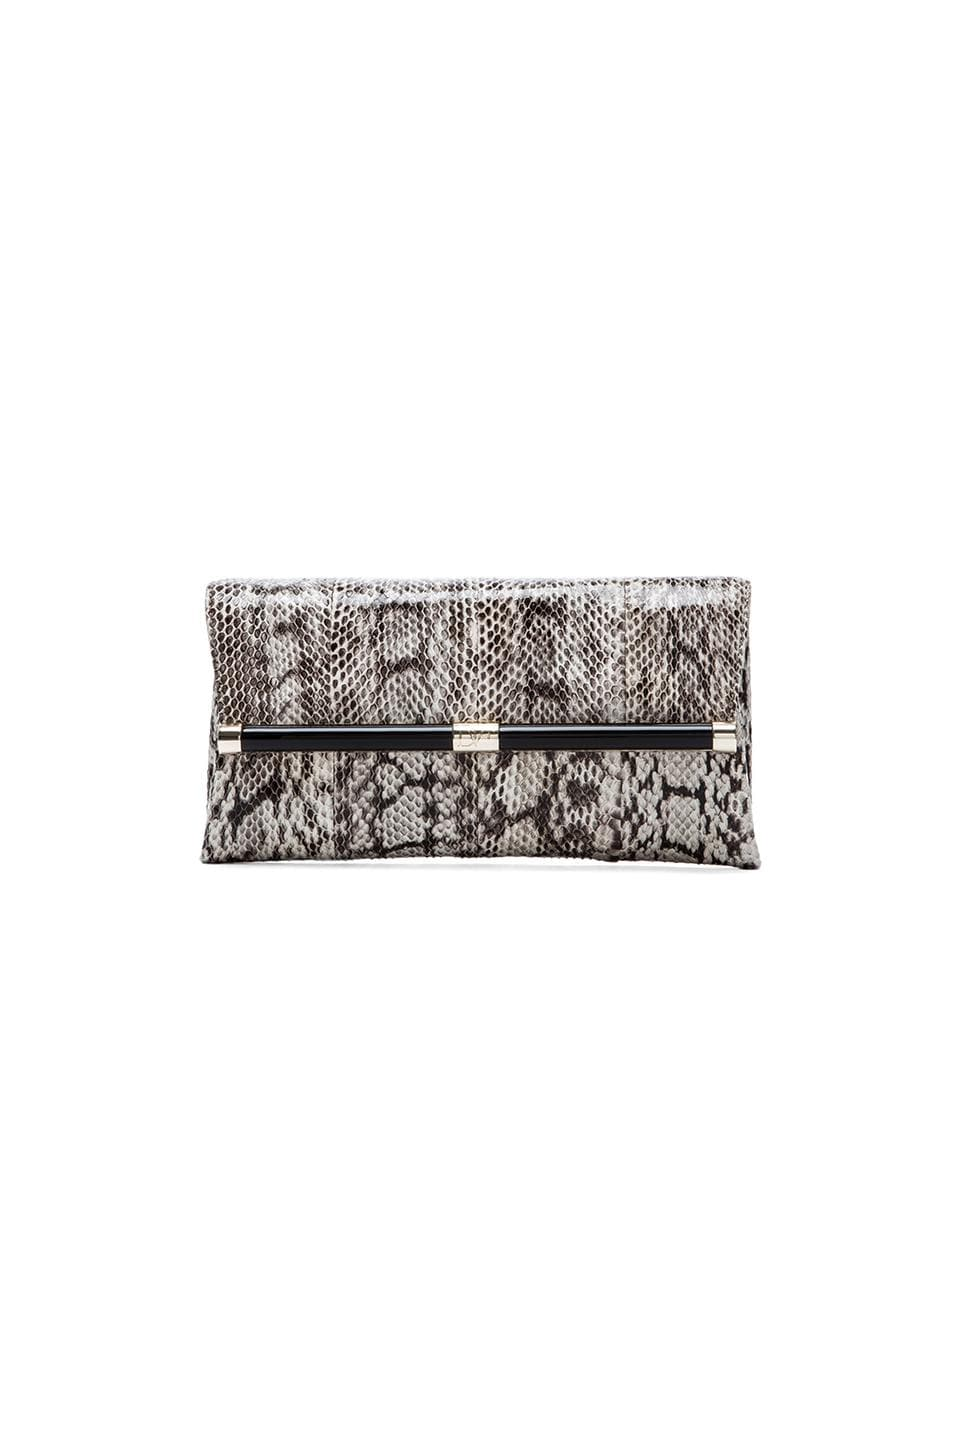 Diane von Furstenberg Envelope Clutch in Natural Roccia